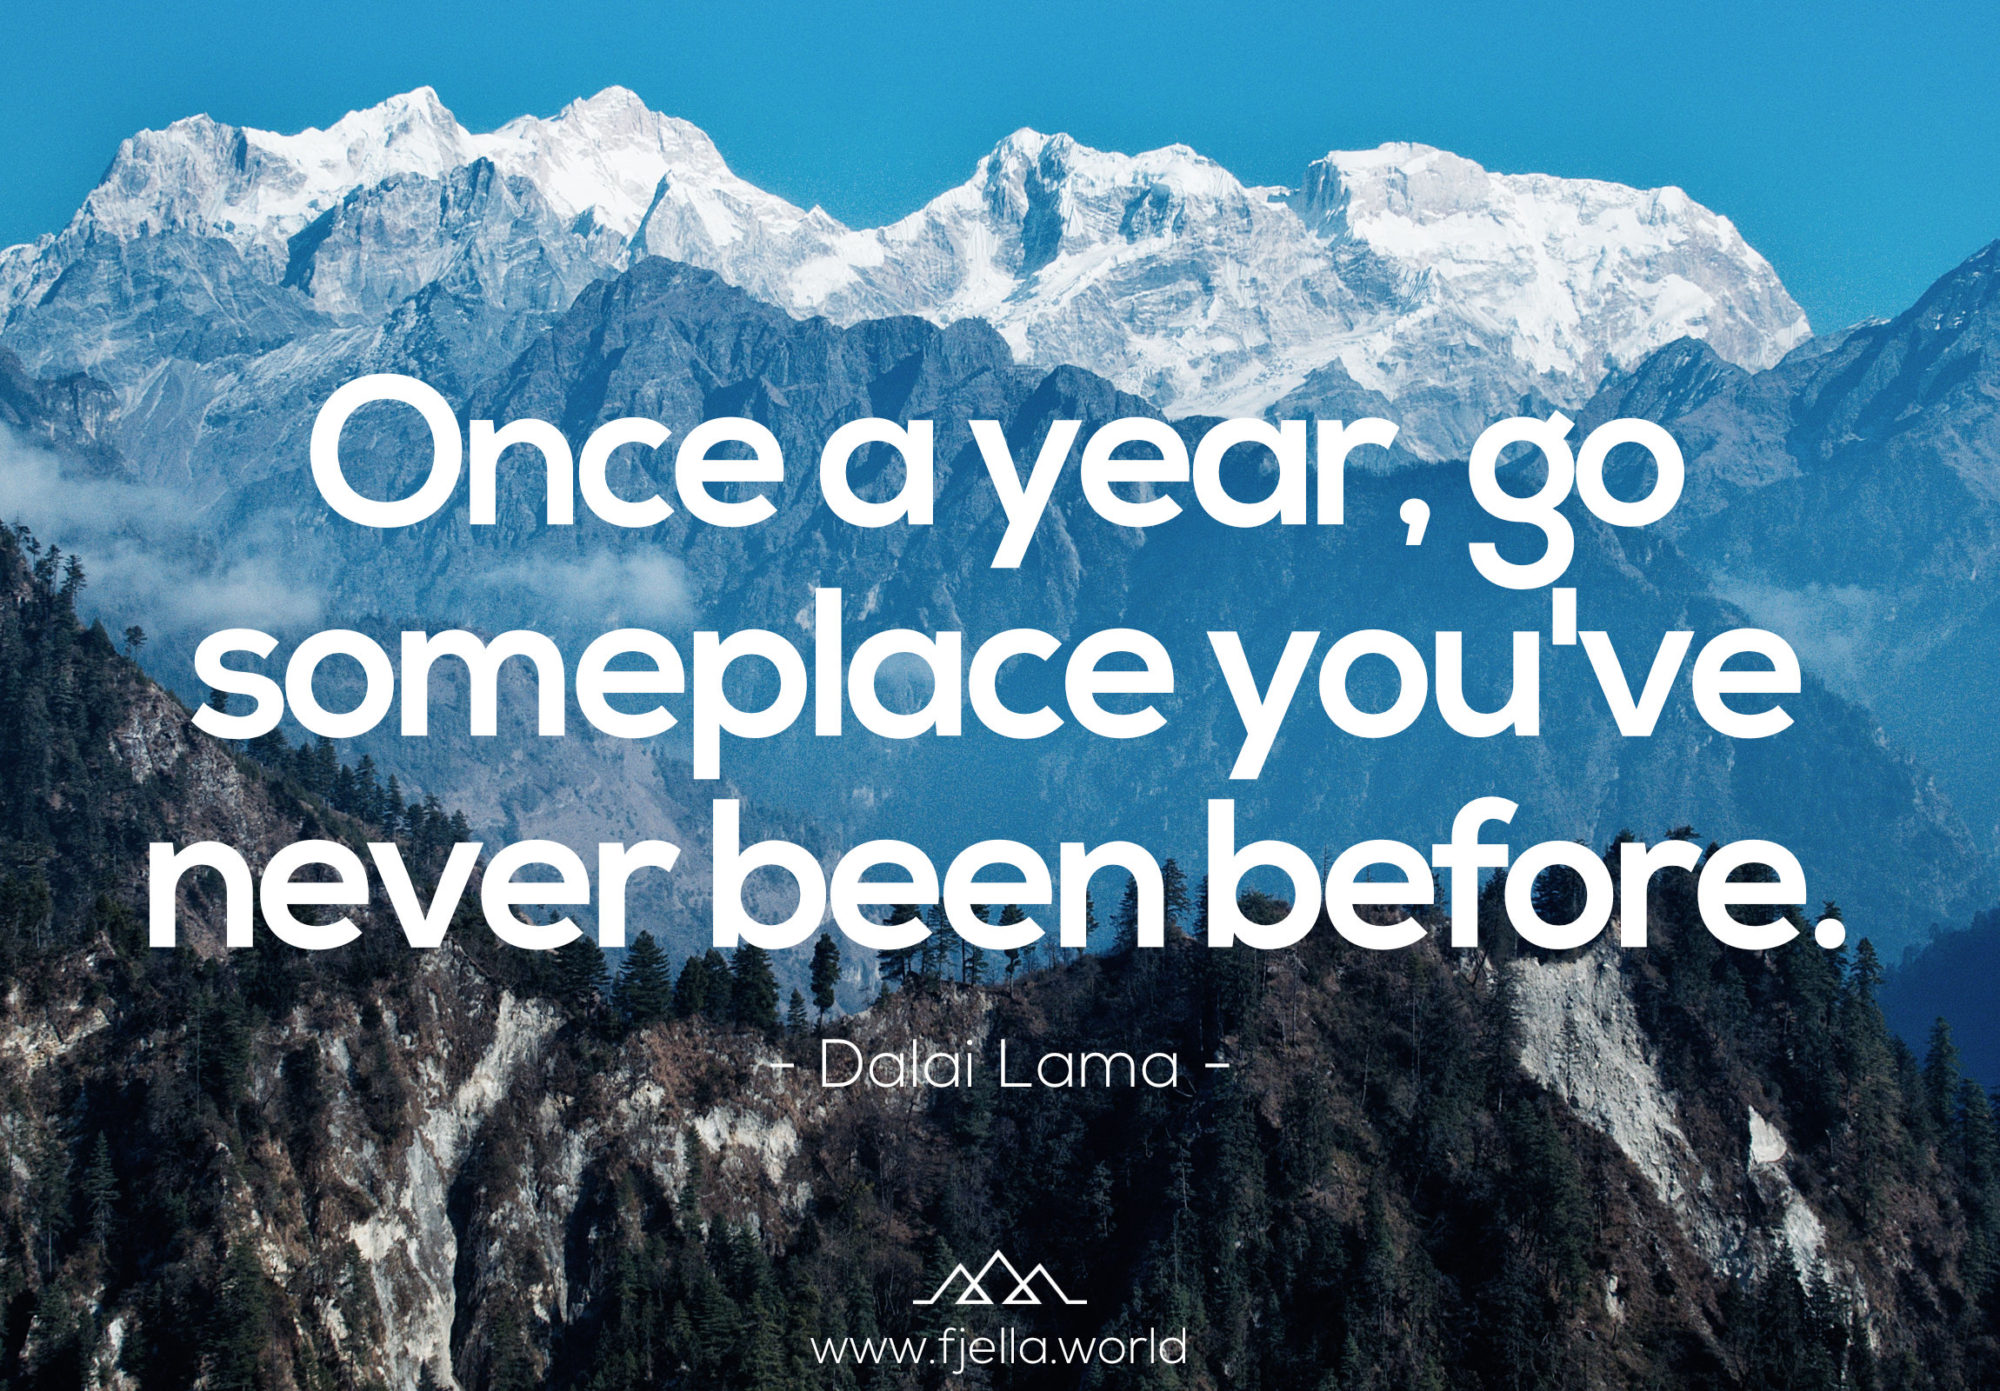 Wandersprüche: Once a year go someplace you've never been before